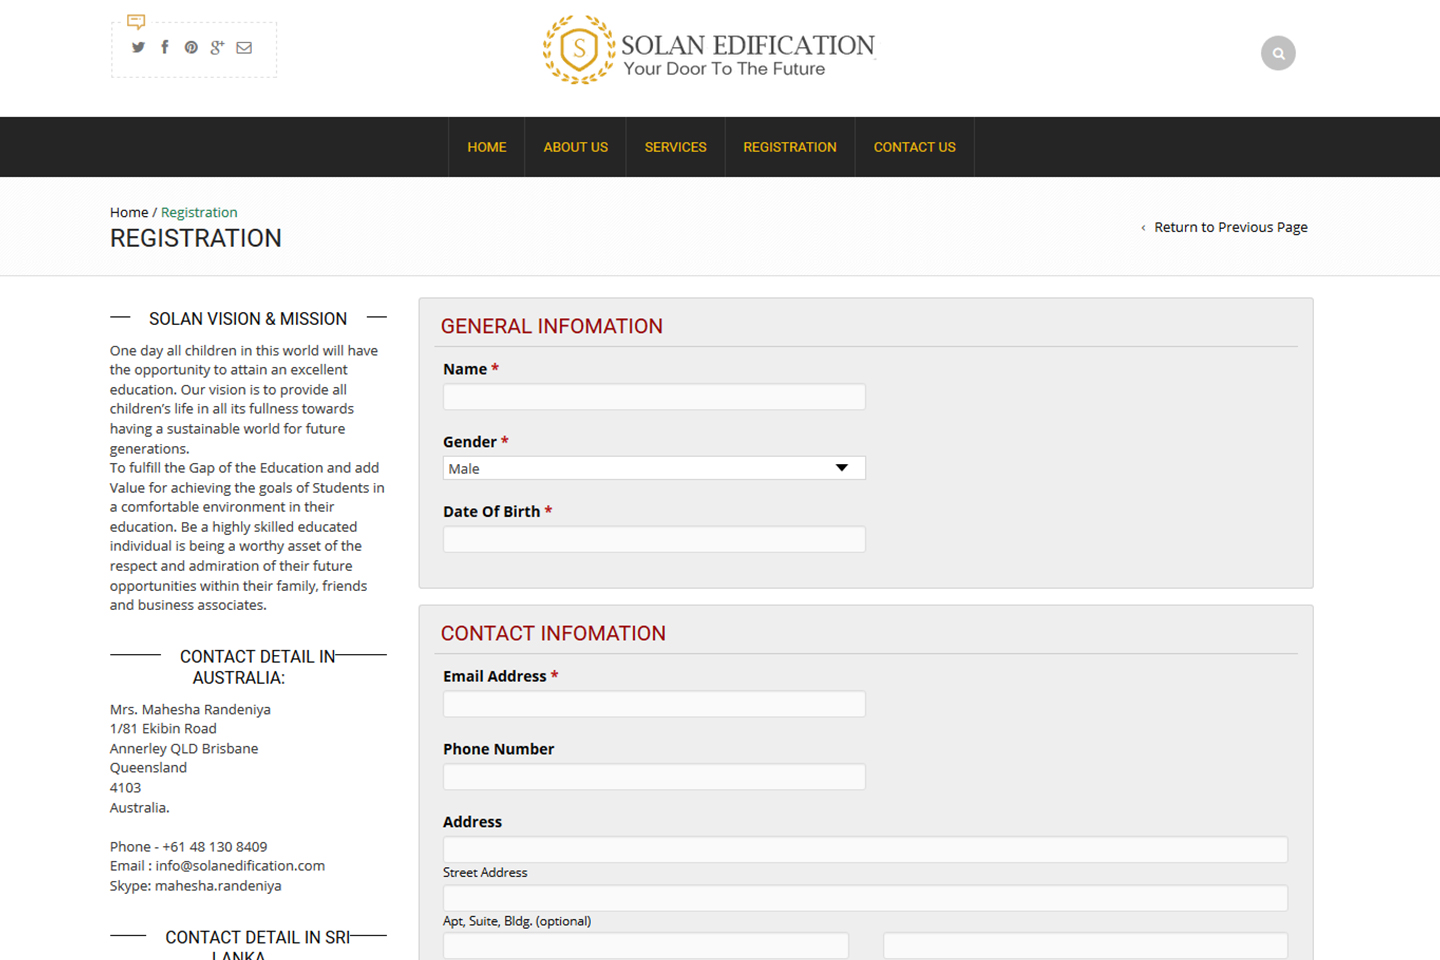 Registration Page Solan Edification